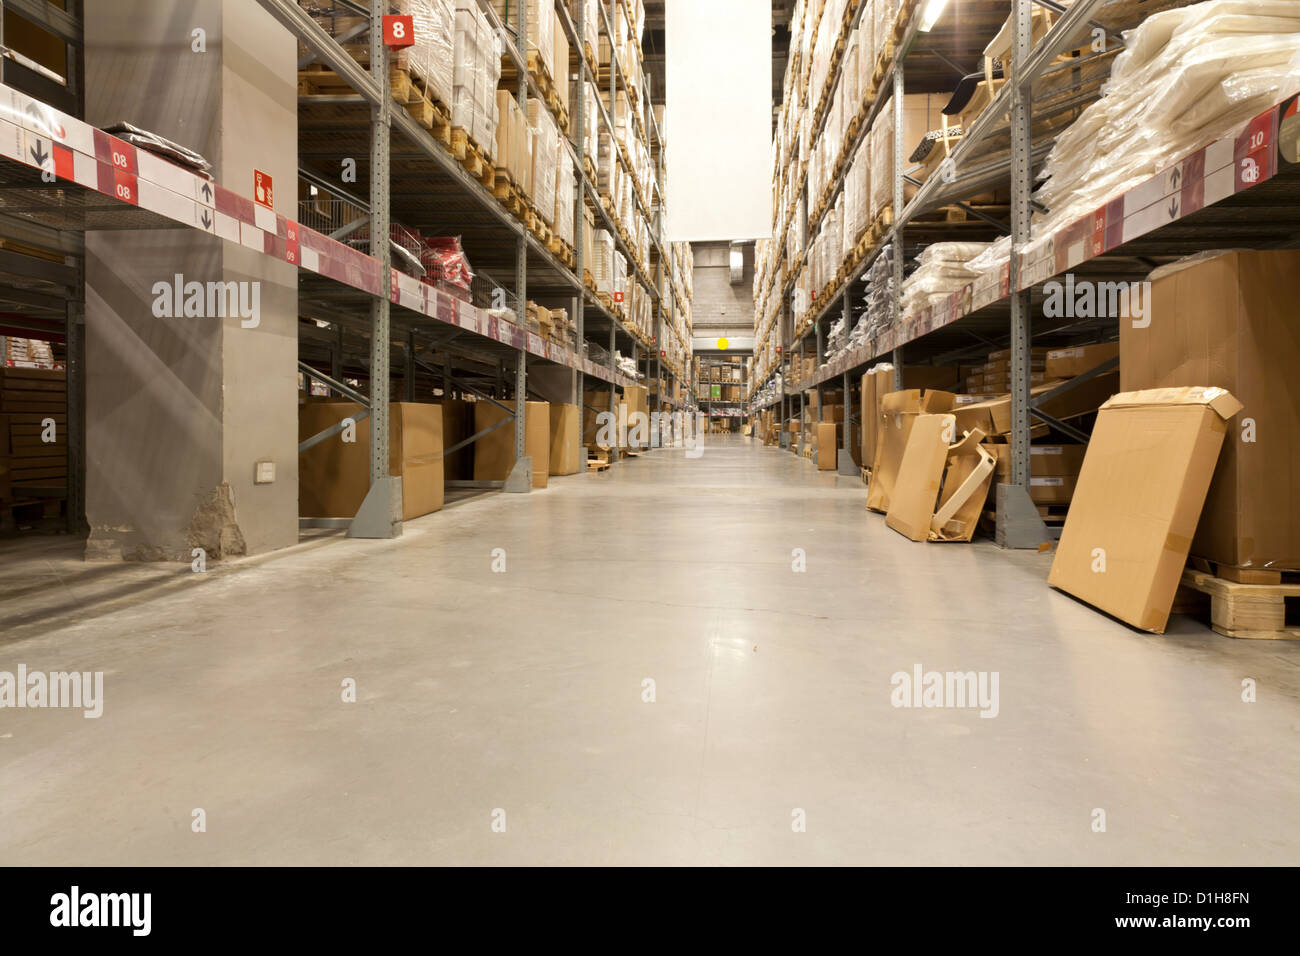 Inside a large distribution warehouse - Stock Image